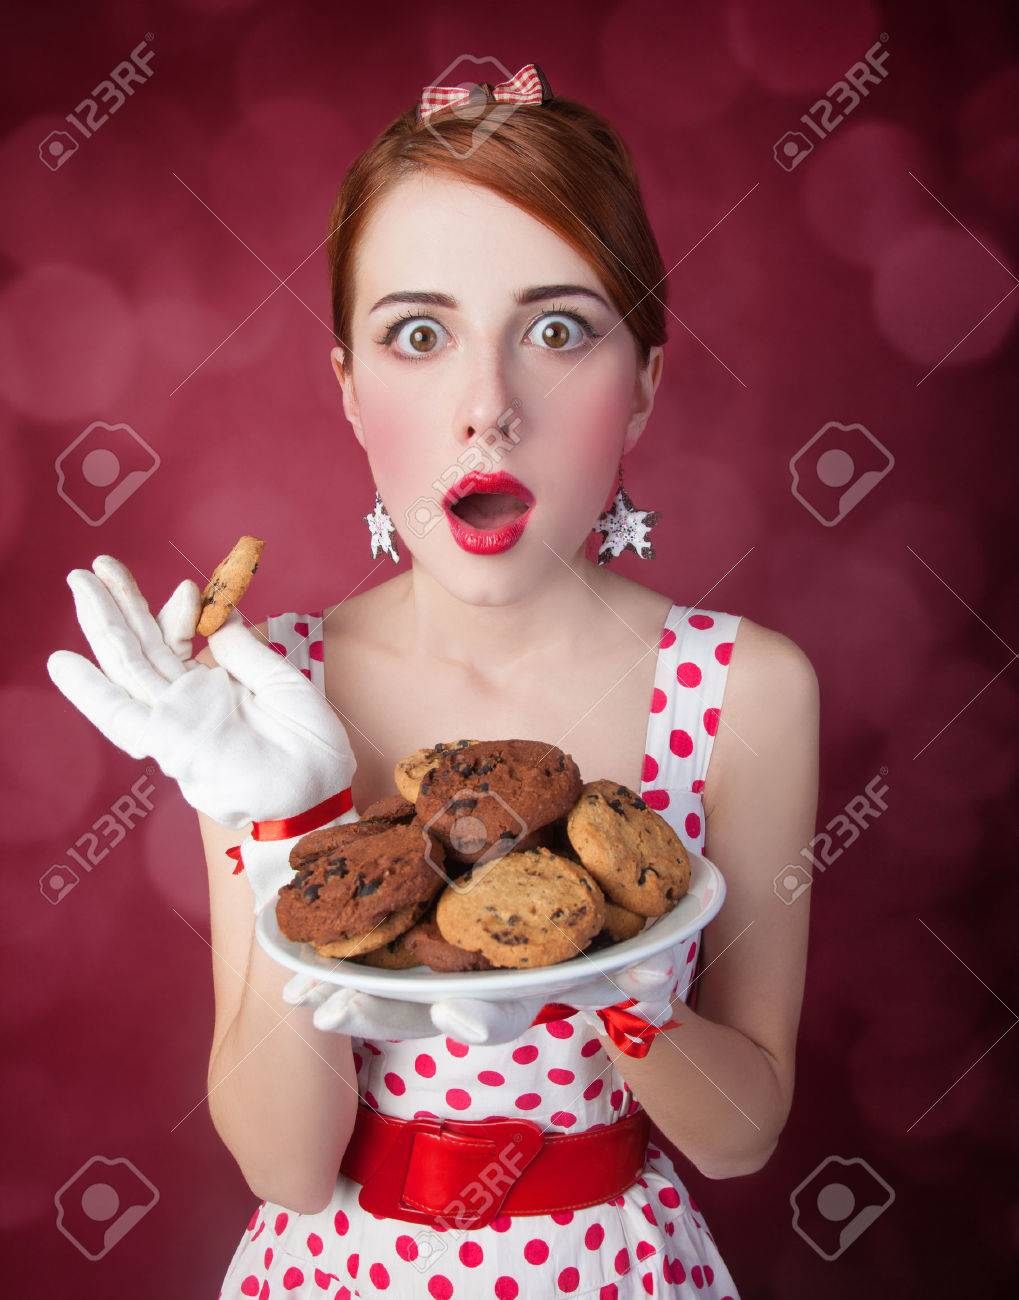 Beautiful redhead women with coockie. Photo in retro style with bokeh at background. Stock Photo - 23518814